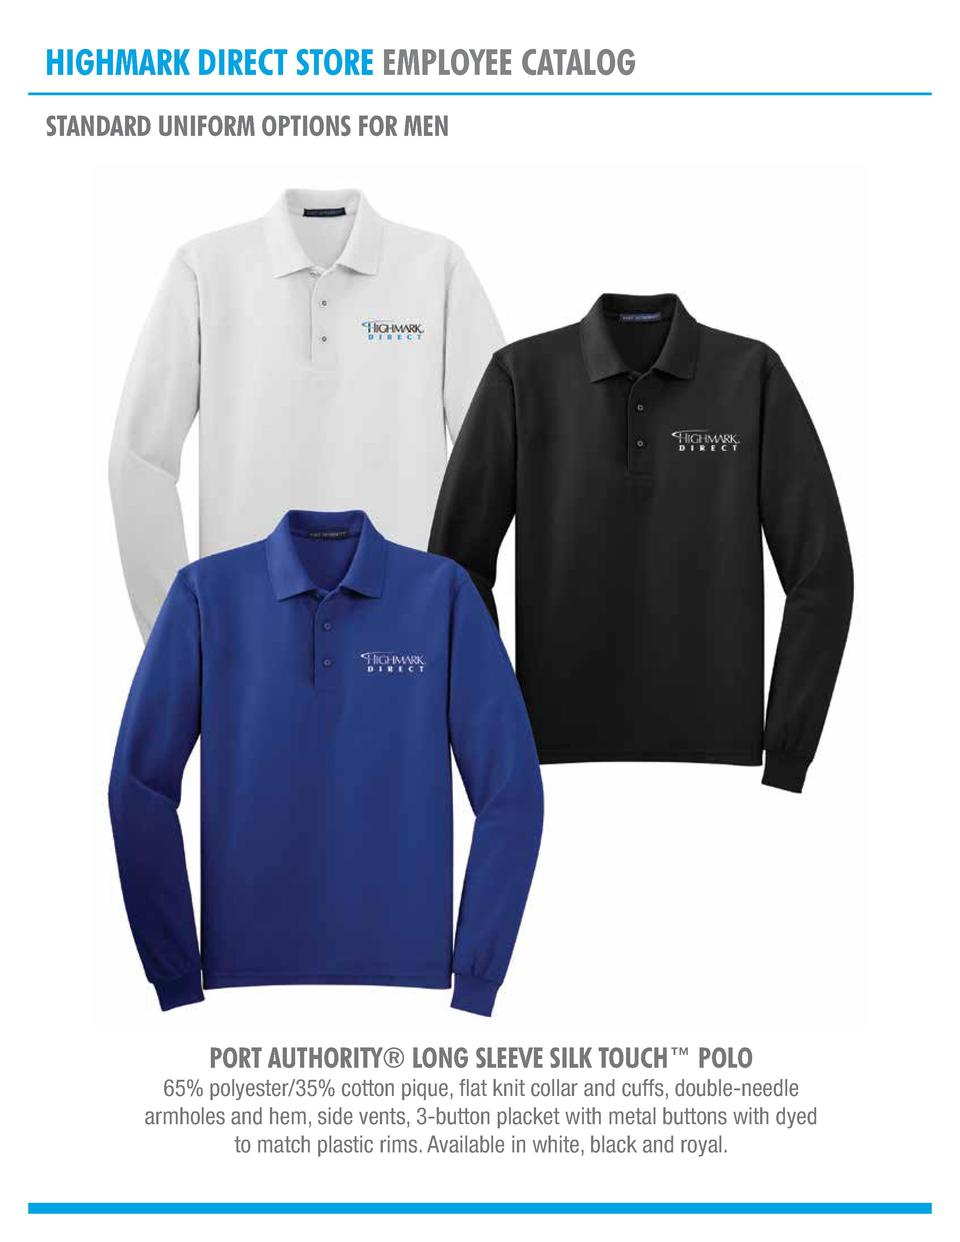 HIGHMARK DIRECT STORE EMPLOYEE CATALOG STANDARD UNIFORM OPTIONS FOR MEN  PORT AUTHORITY   LONG SLEEVE SILK TOUCH    POLO  ...